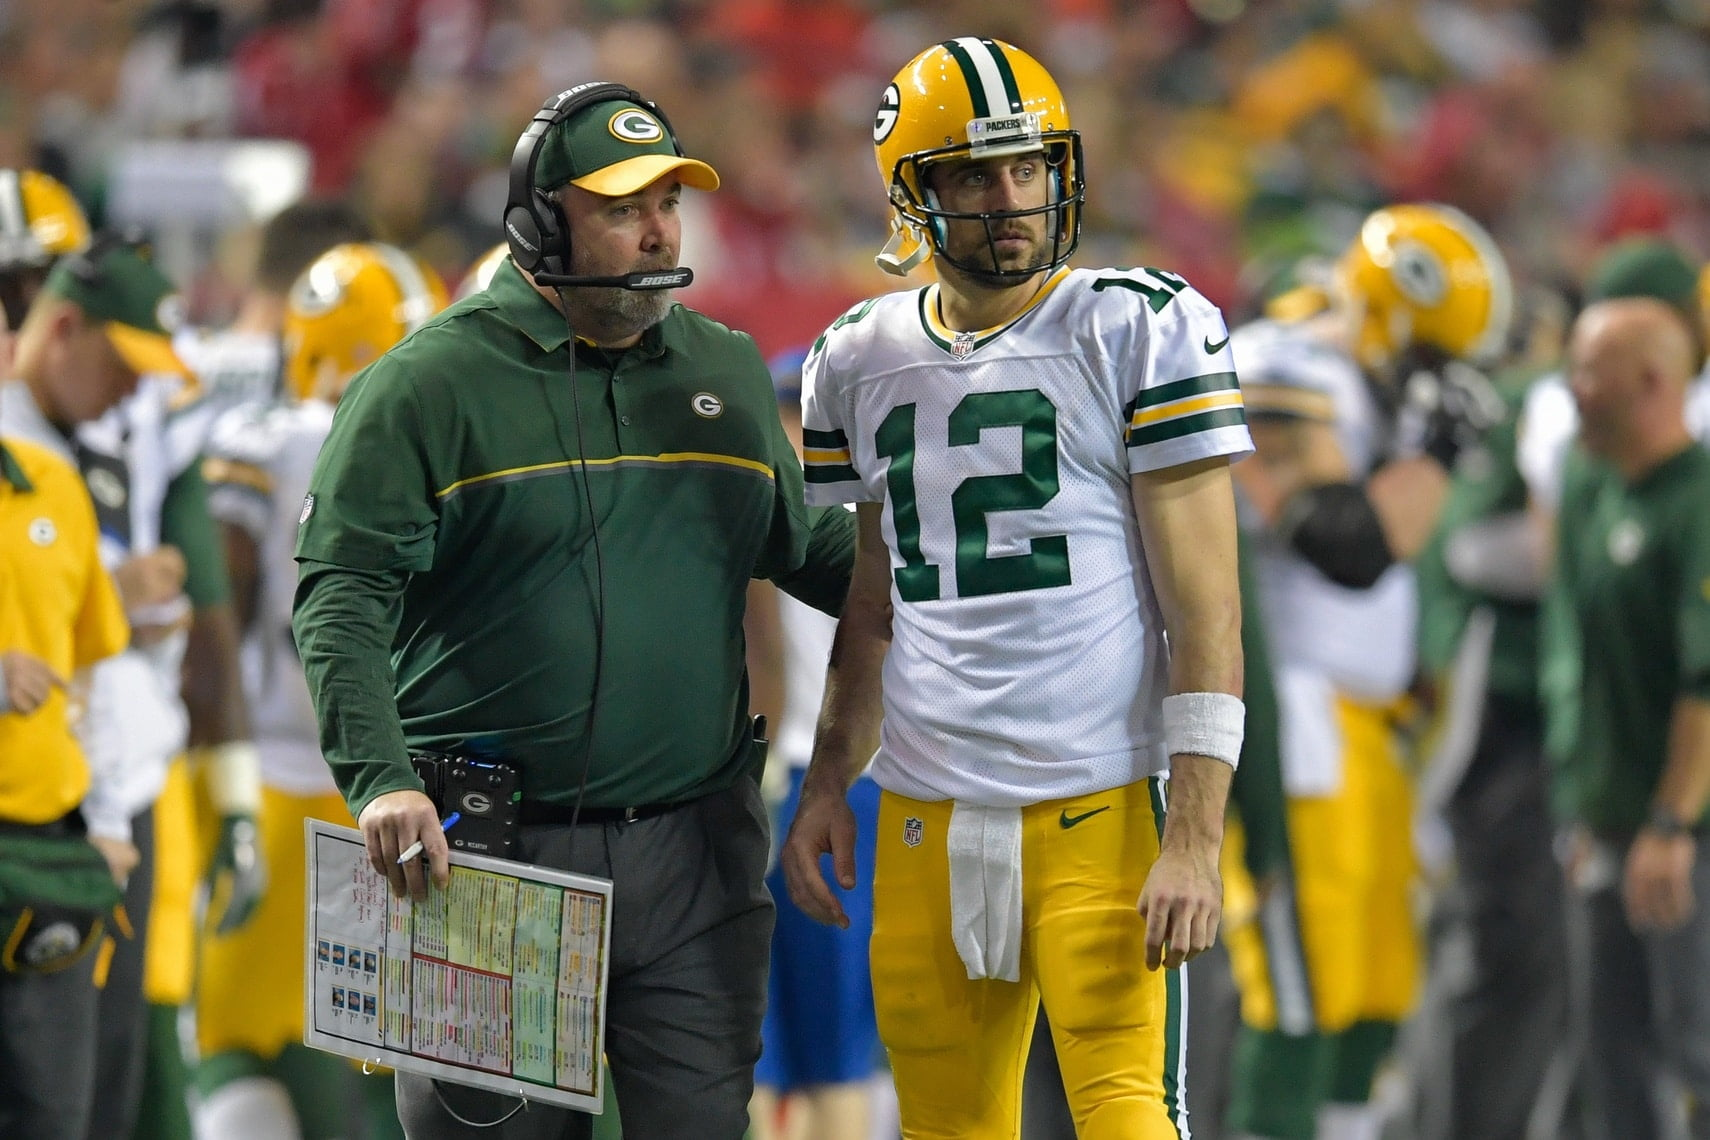 It's time for the Packers to get Aaron Rodgers some help.